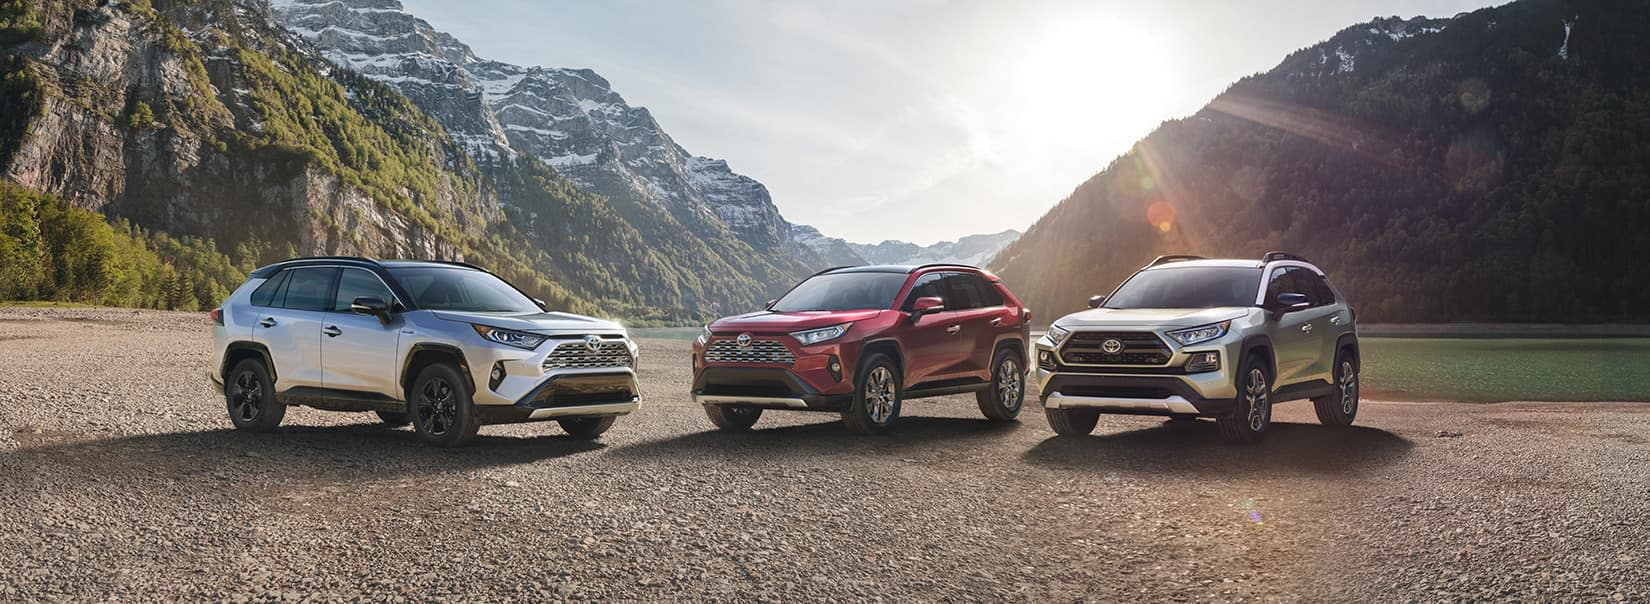 Halterman's Toyota is a Toyota Dealership near Brodheadsville, PA   Three 2020 Toyota RAV4s parked with mountains in the background